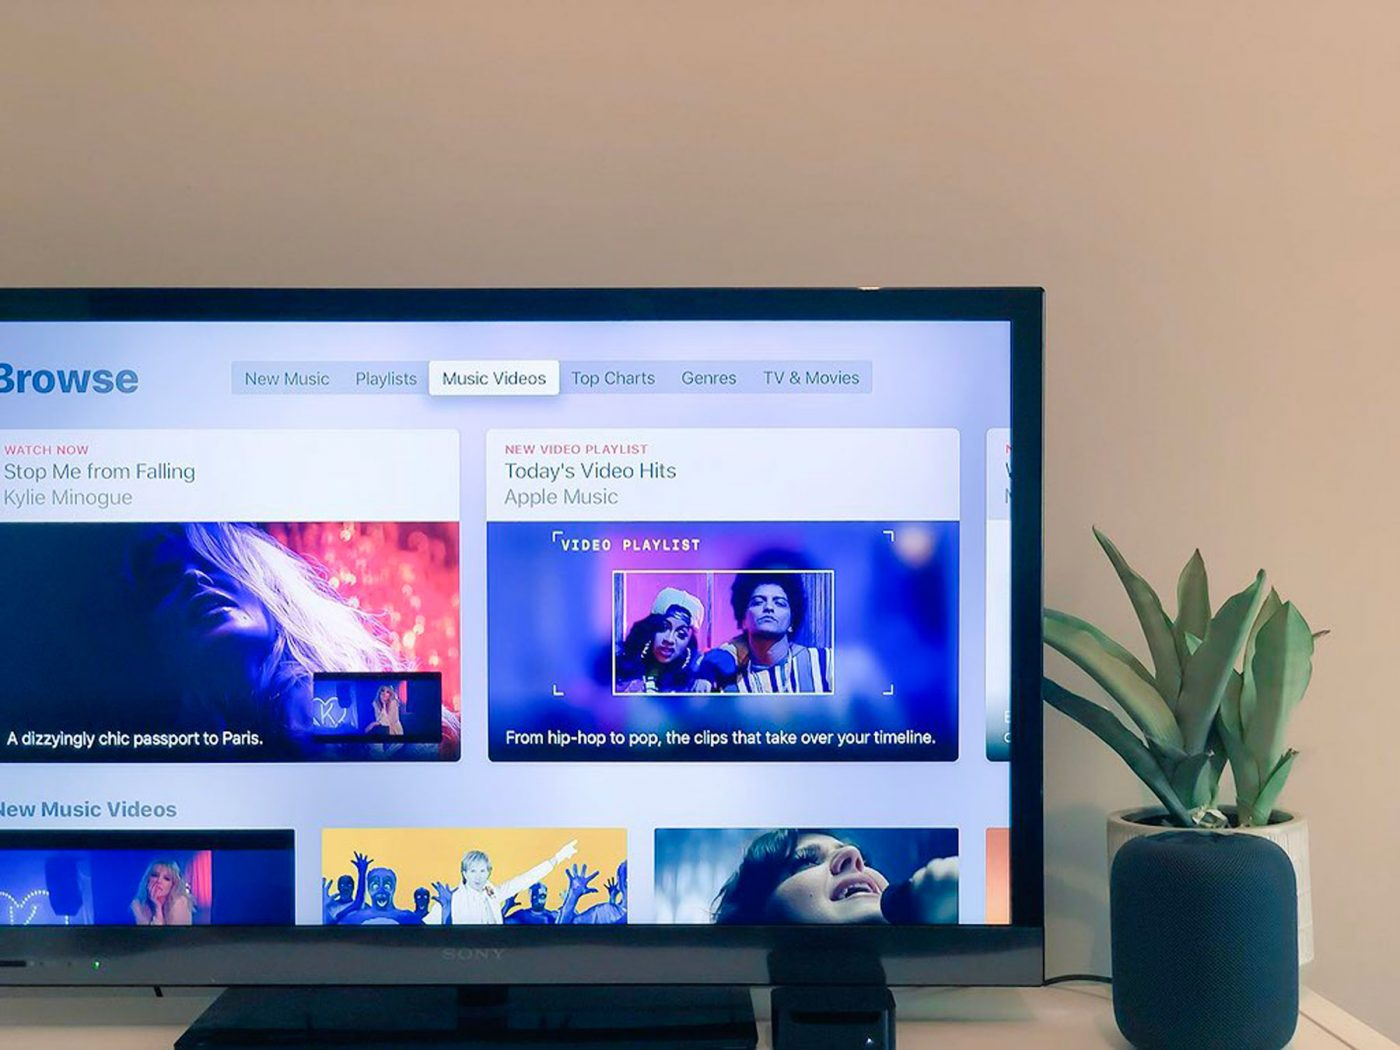 Apple Music Video Streaming With Apple TV 4K and HomePod